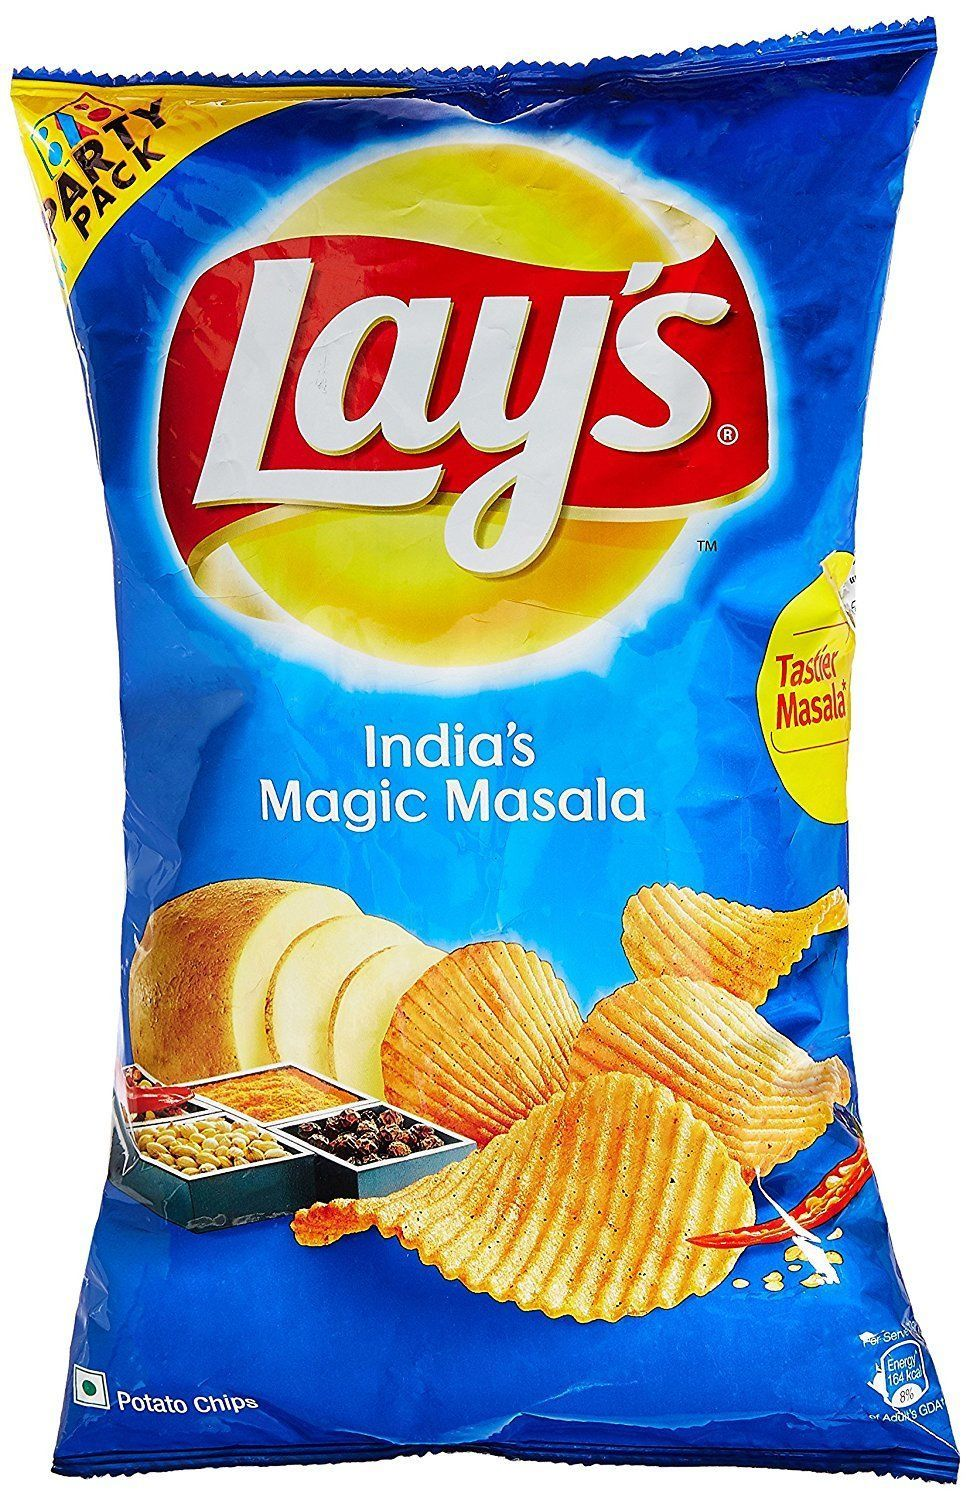 Lays Lay's India's Magic Masala 177 grams Pack 6.25 oz Potato Chips Wafers Snack